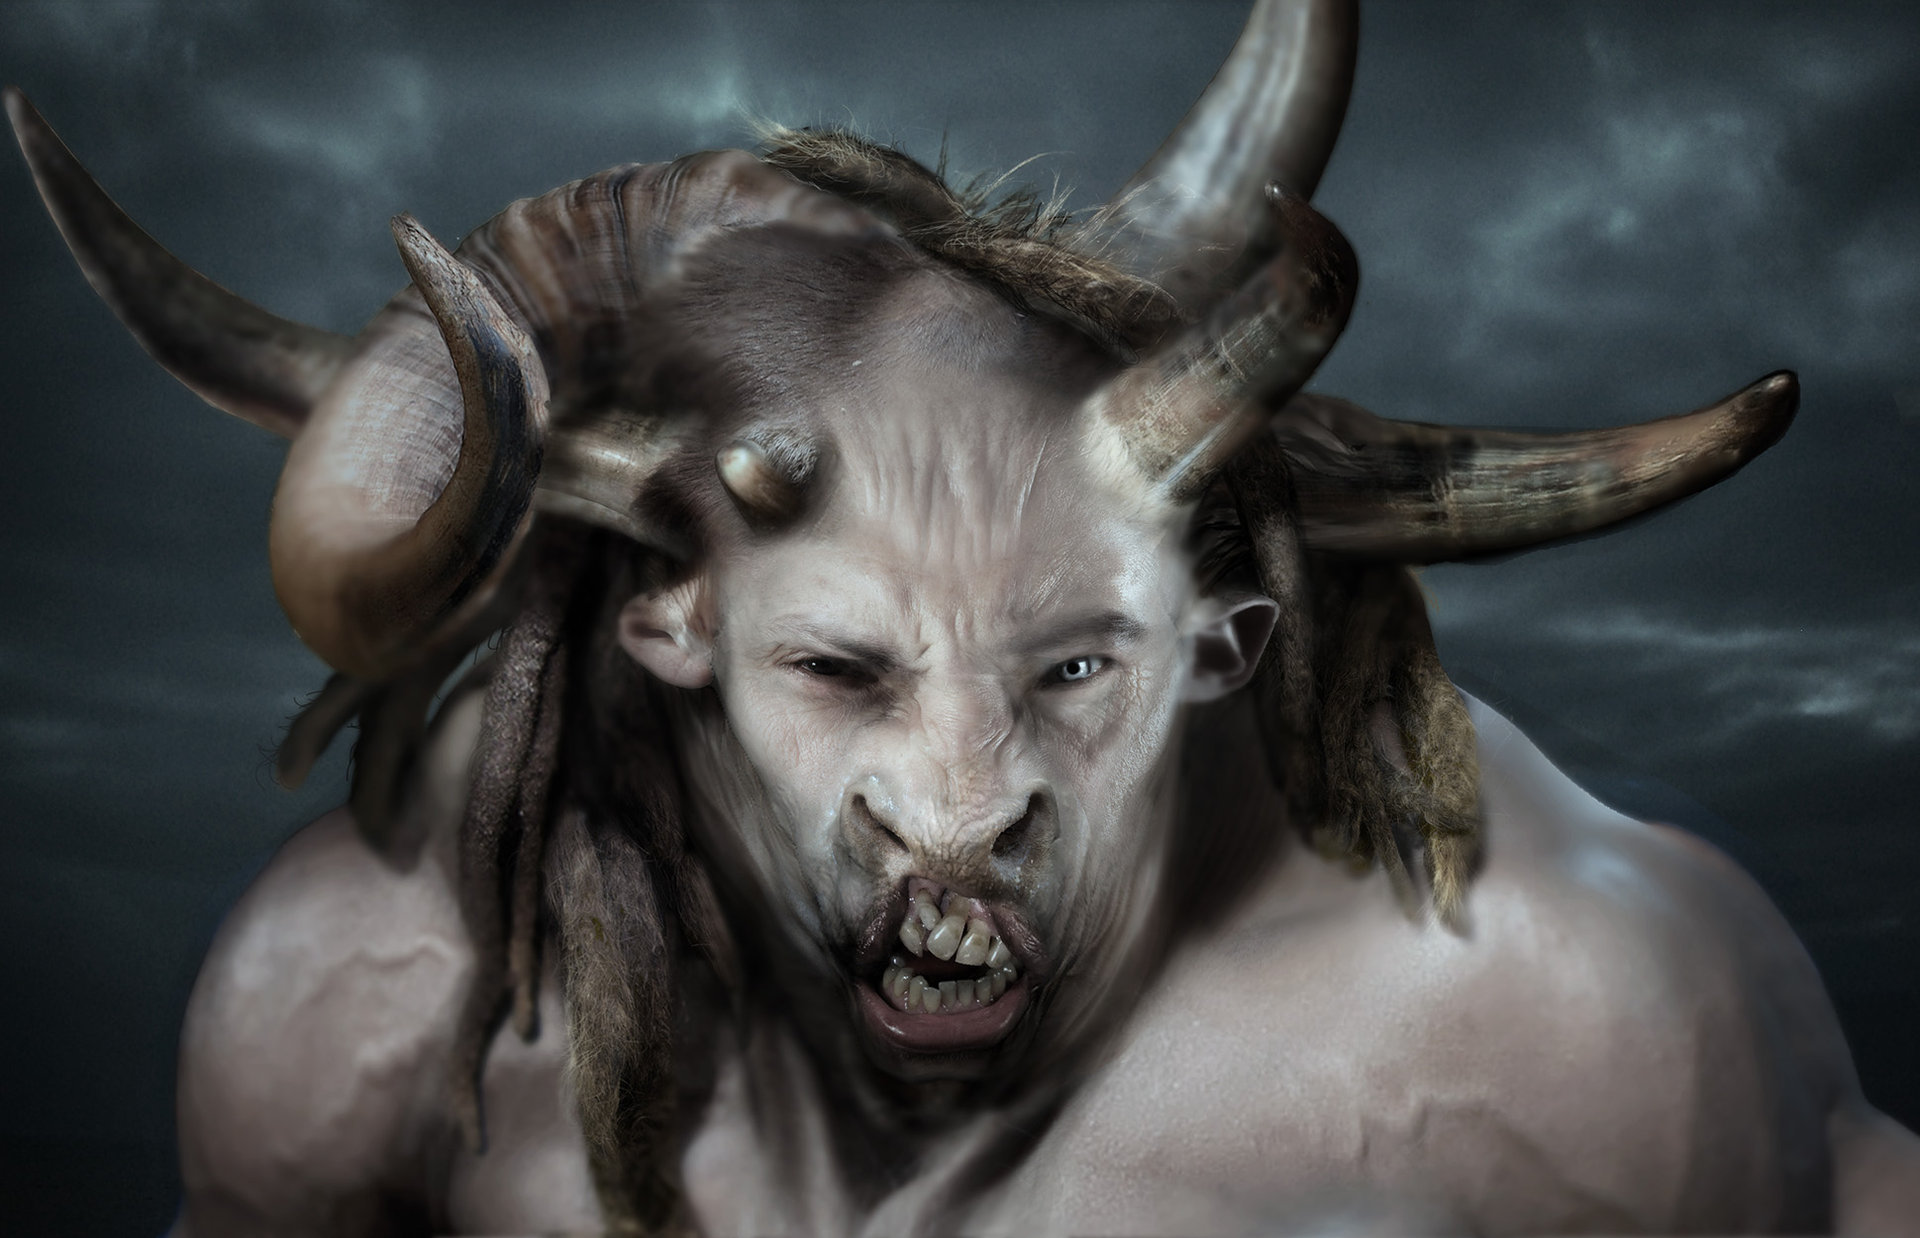 Minotaur main head design, done for Wrath of the Titans